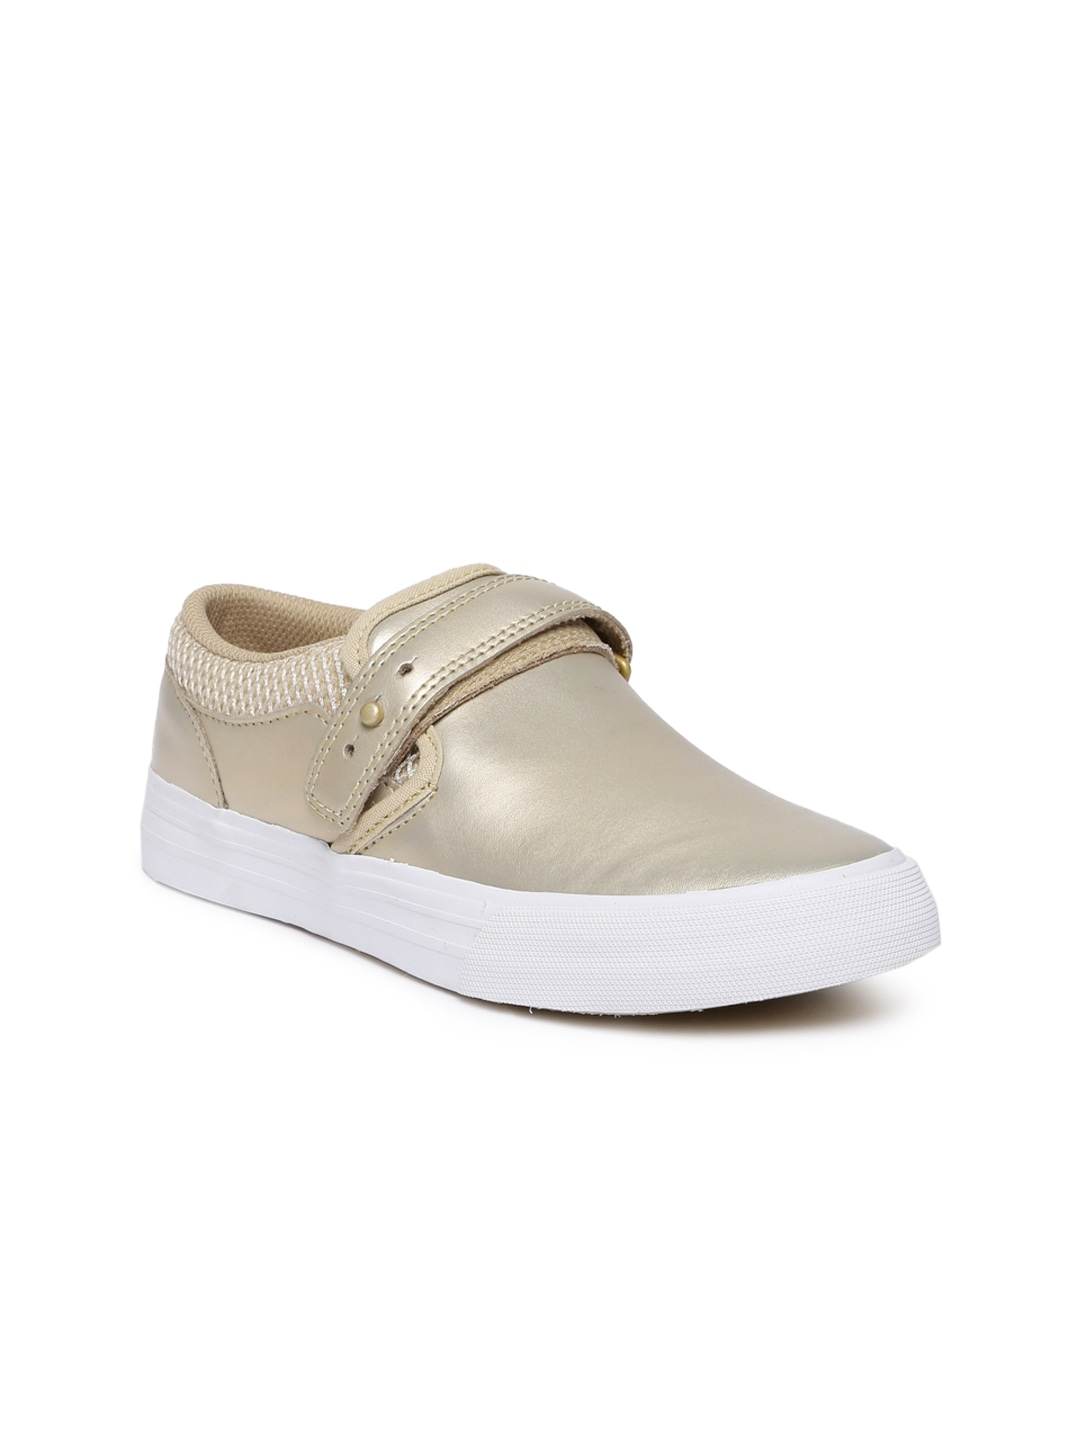 Mute Gold-Toned Cubana Leather Skateboarding Sneakers